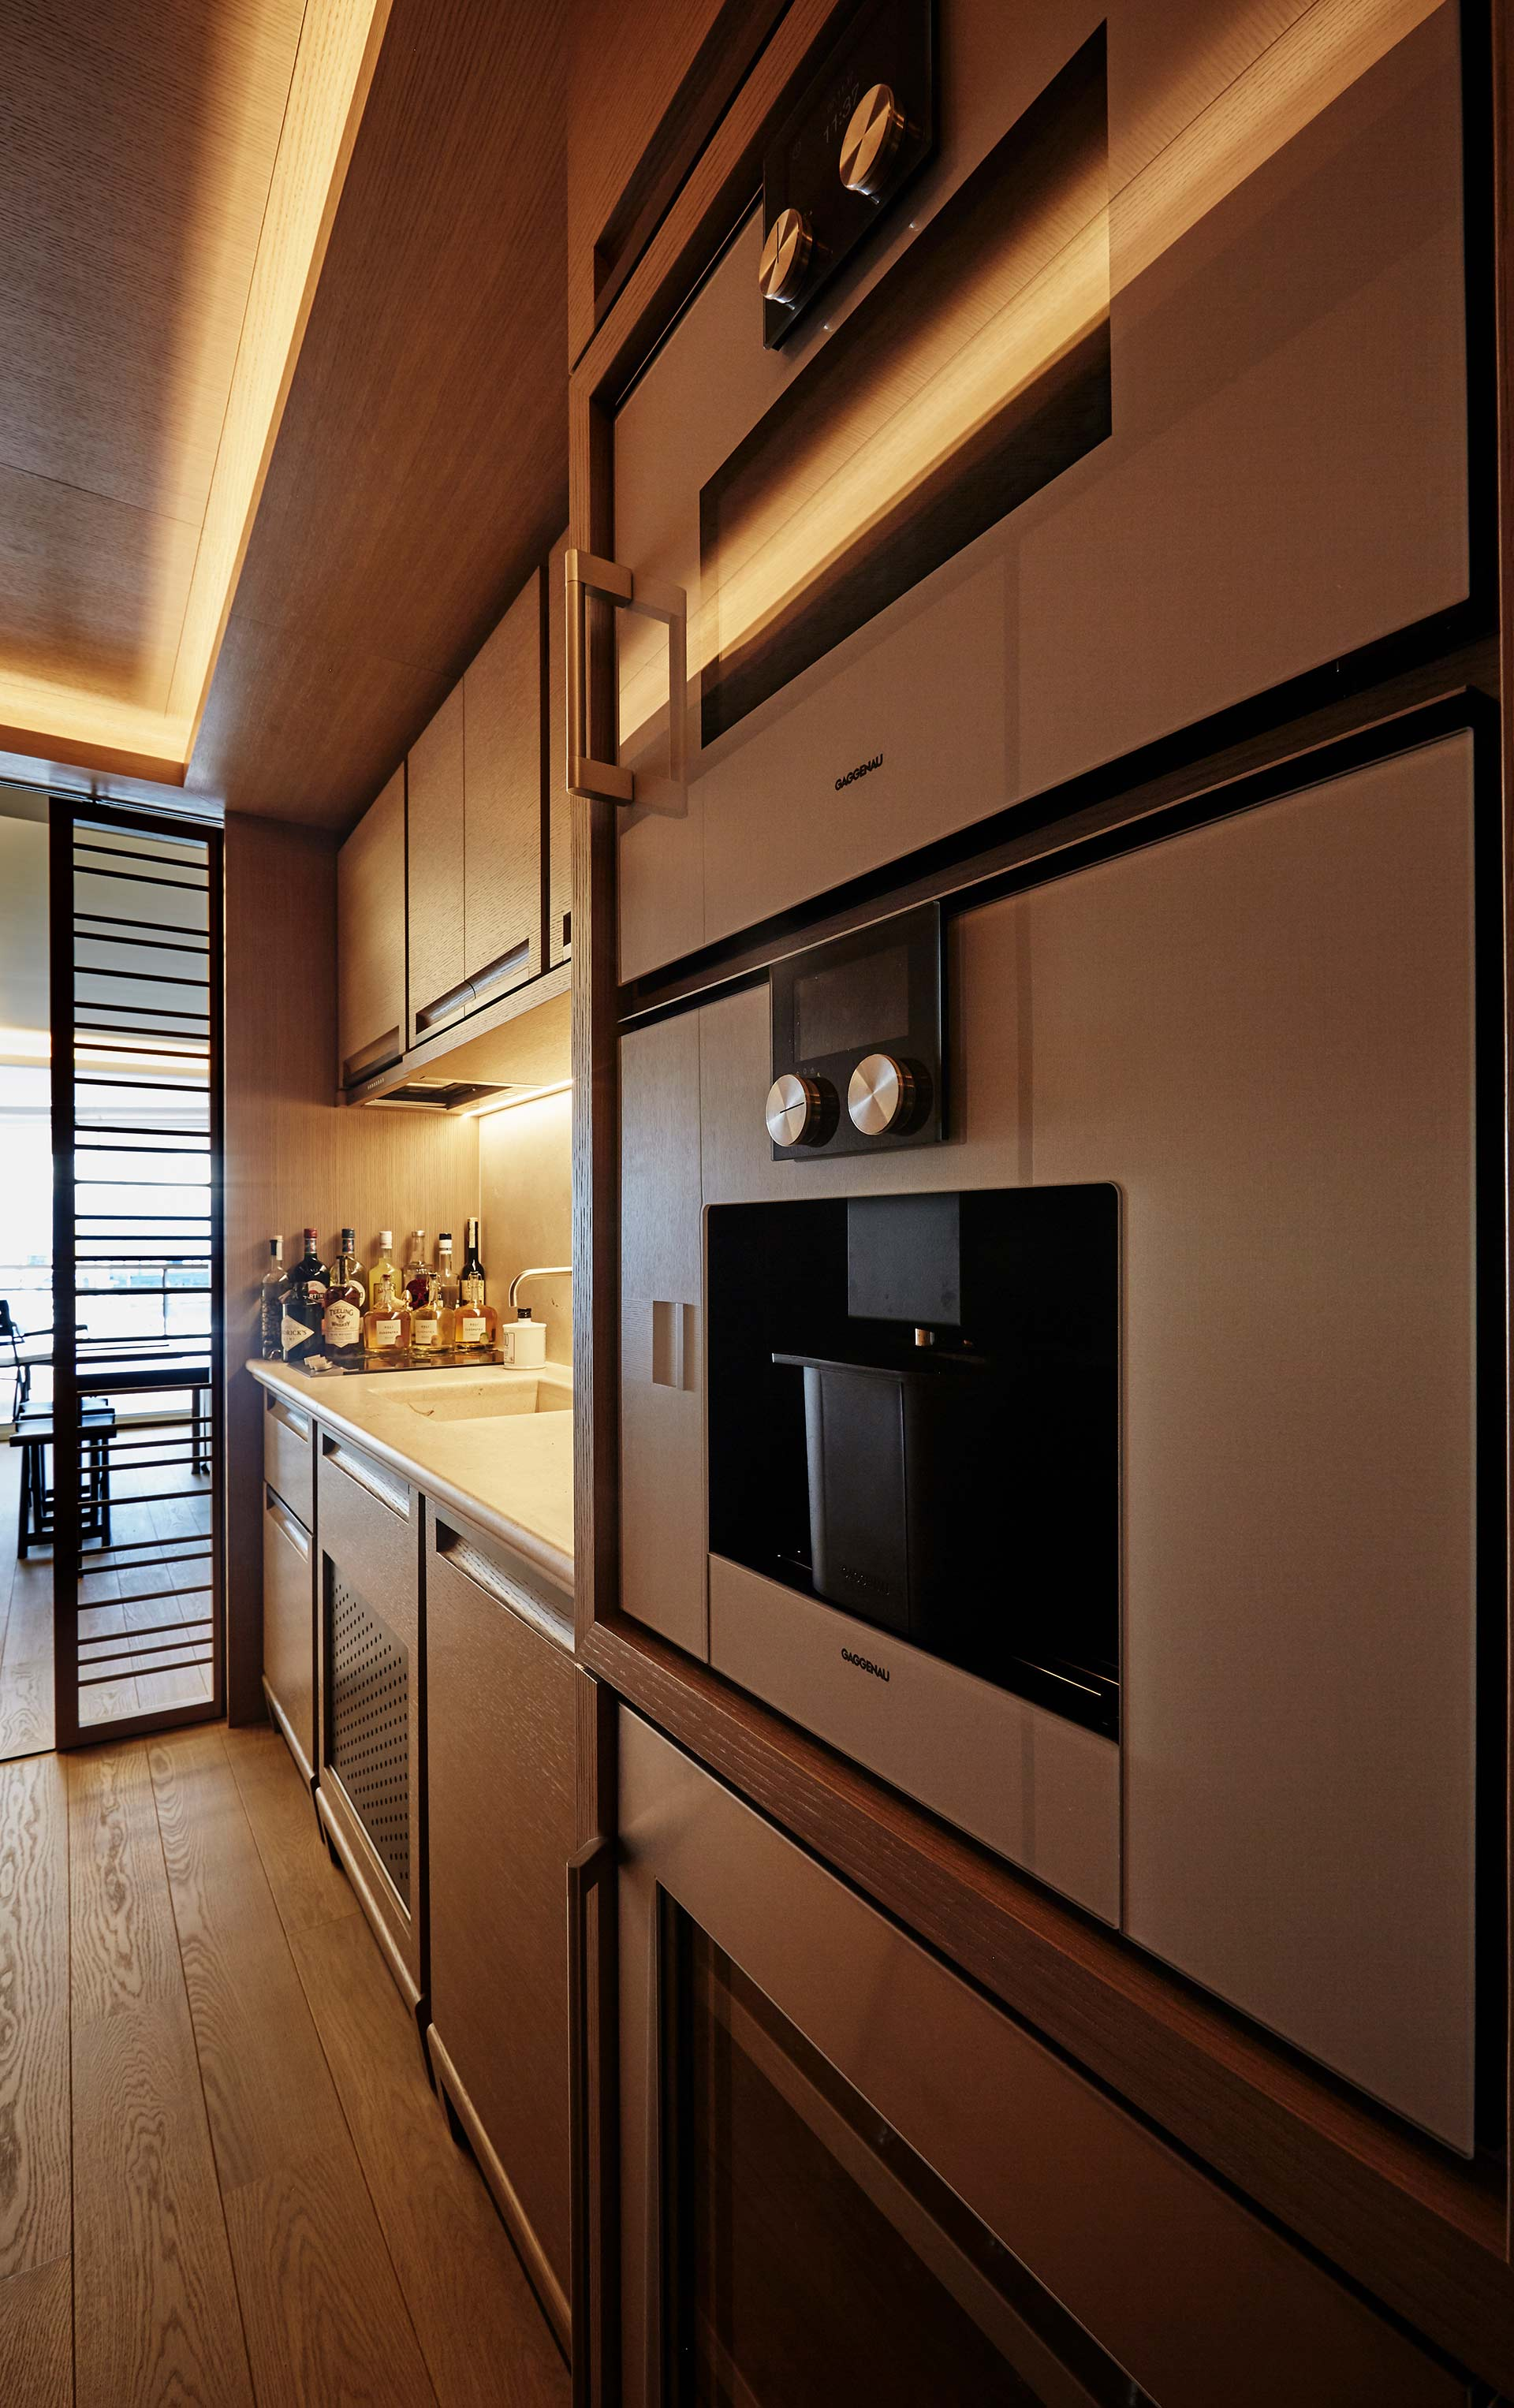 Kitchen of a private residence in Montecarlo furnished with Promemoria | Promemoria